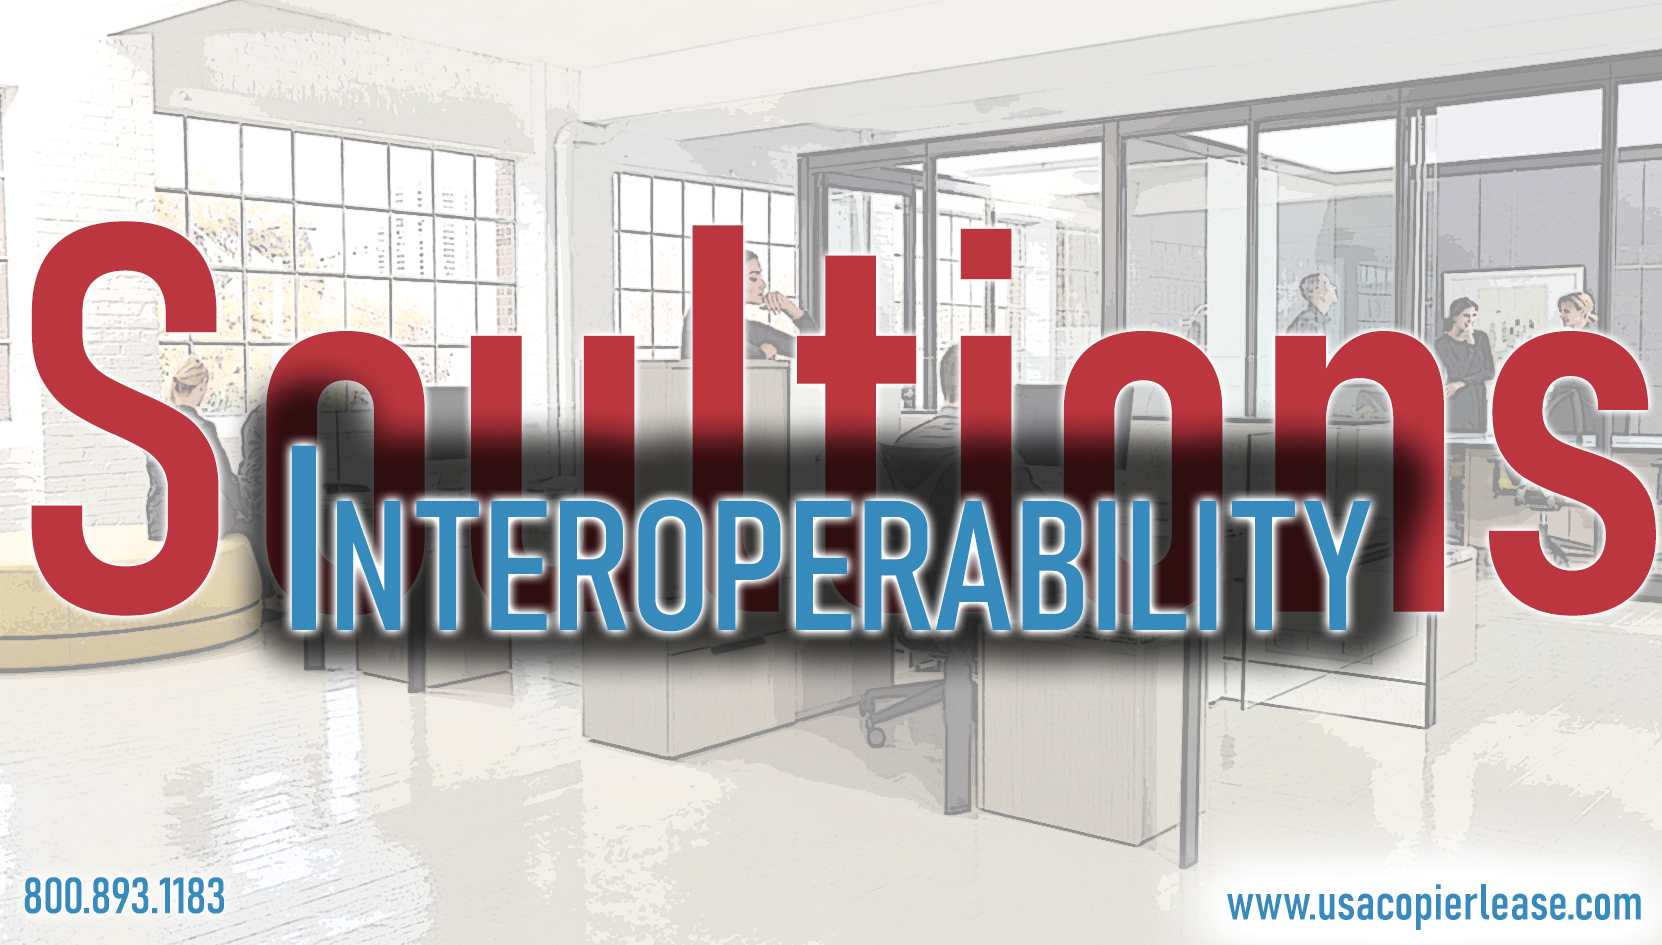 Why Is Interoperability Important in Healthcare?